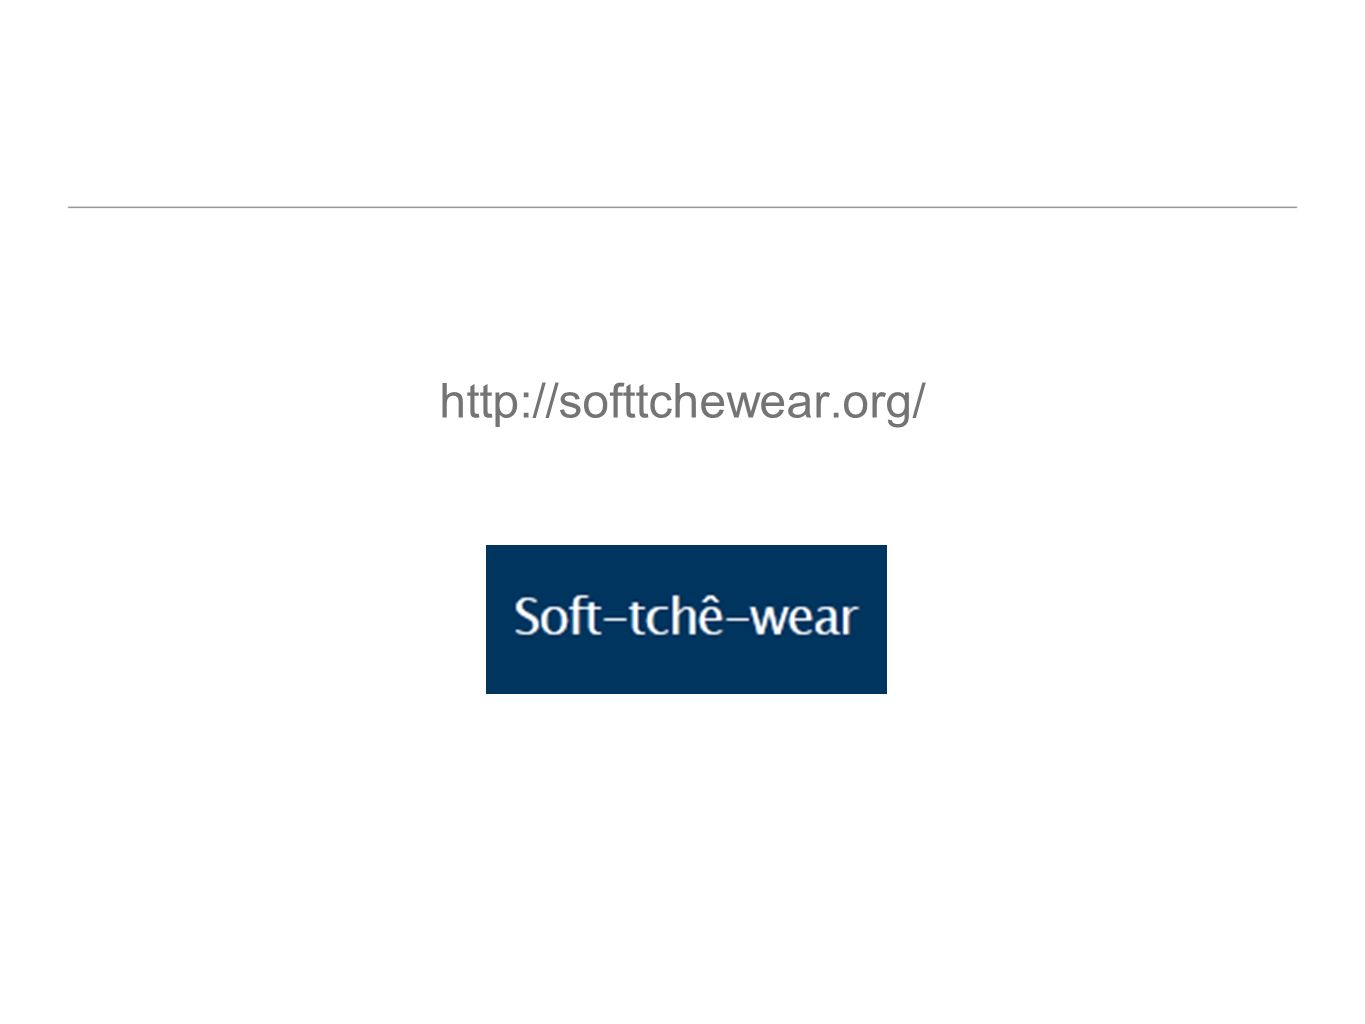 http://softtchewear.org/